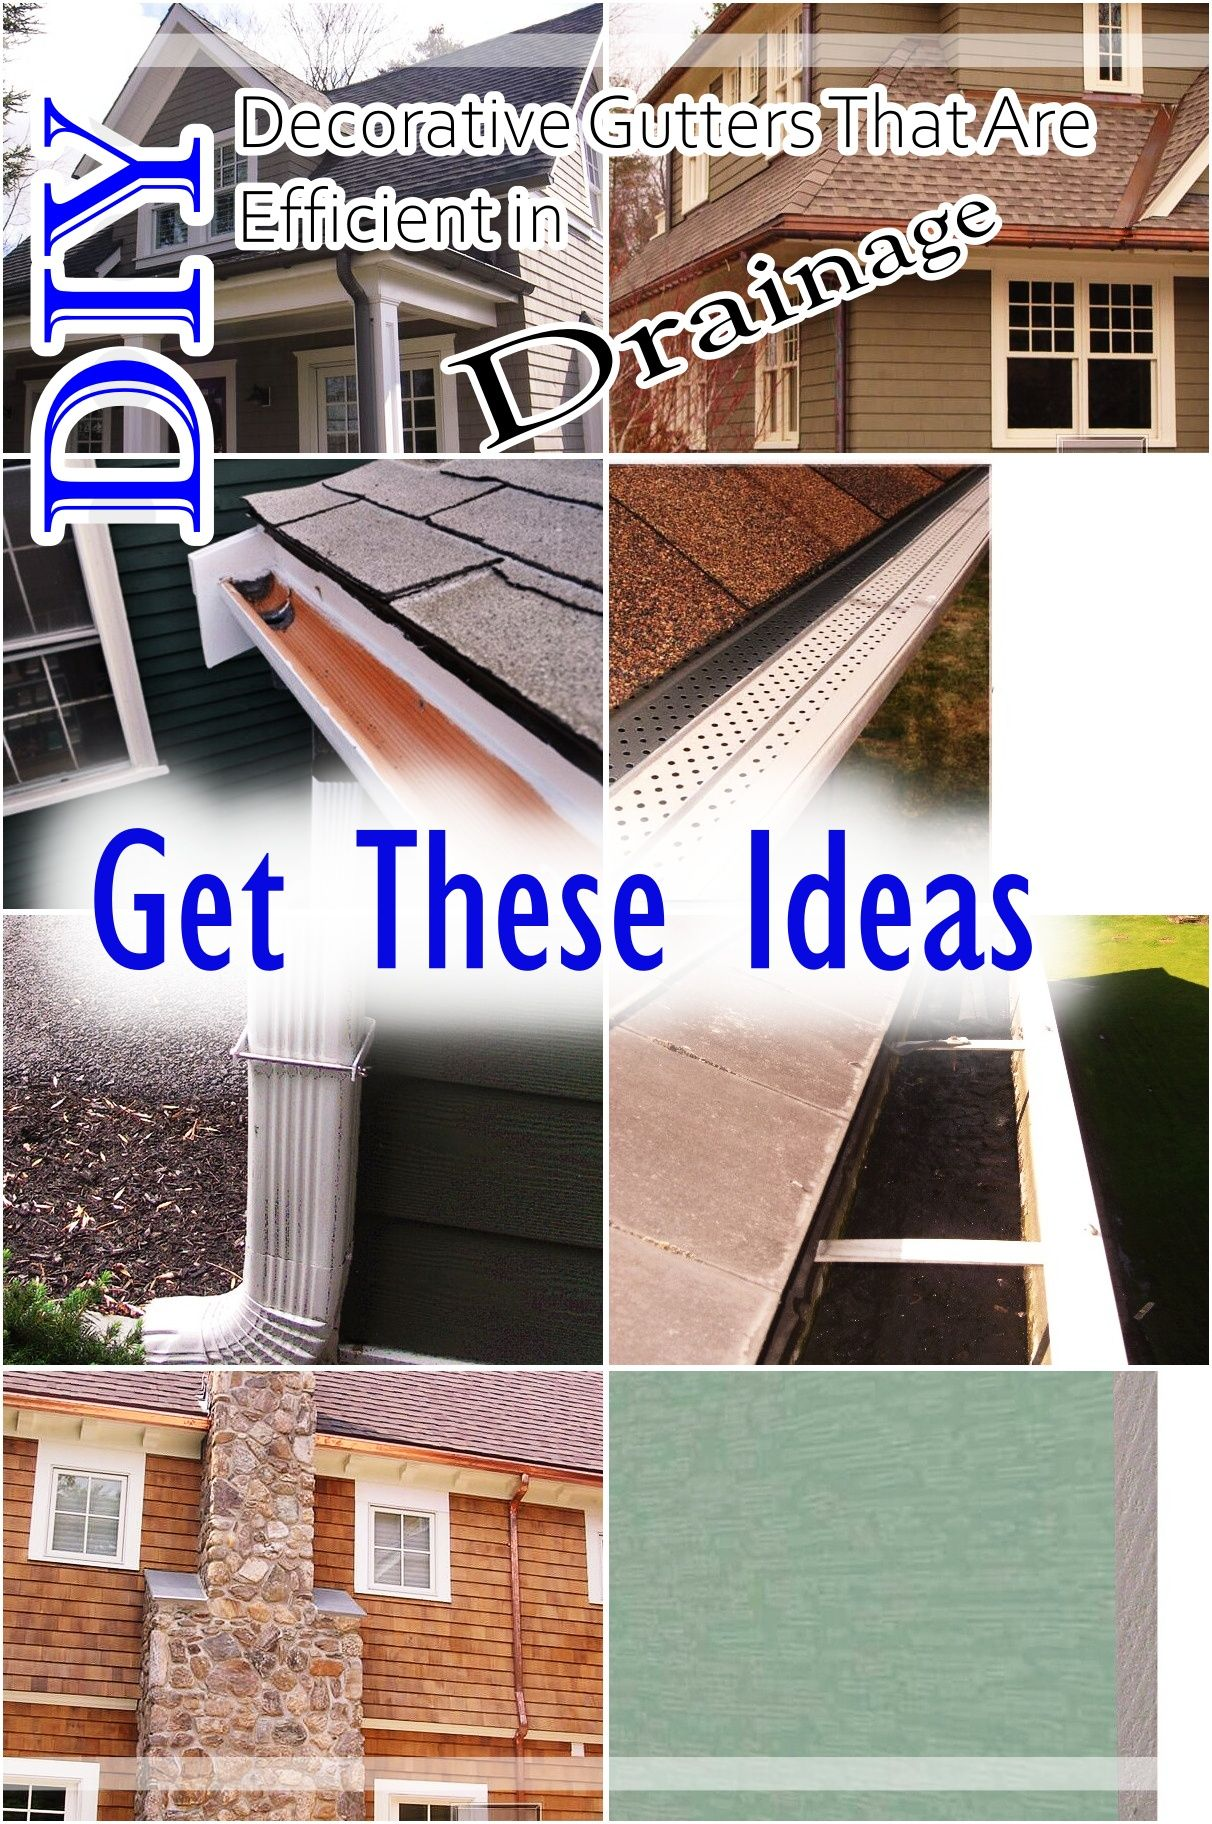 Facts Of Leaking Roof In 2020 Cool Roof Leaking Roof Gutters